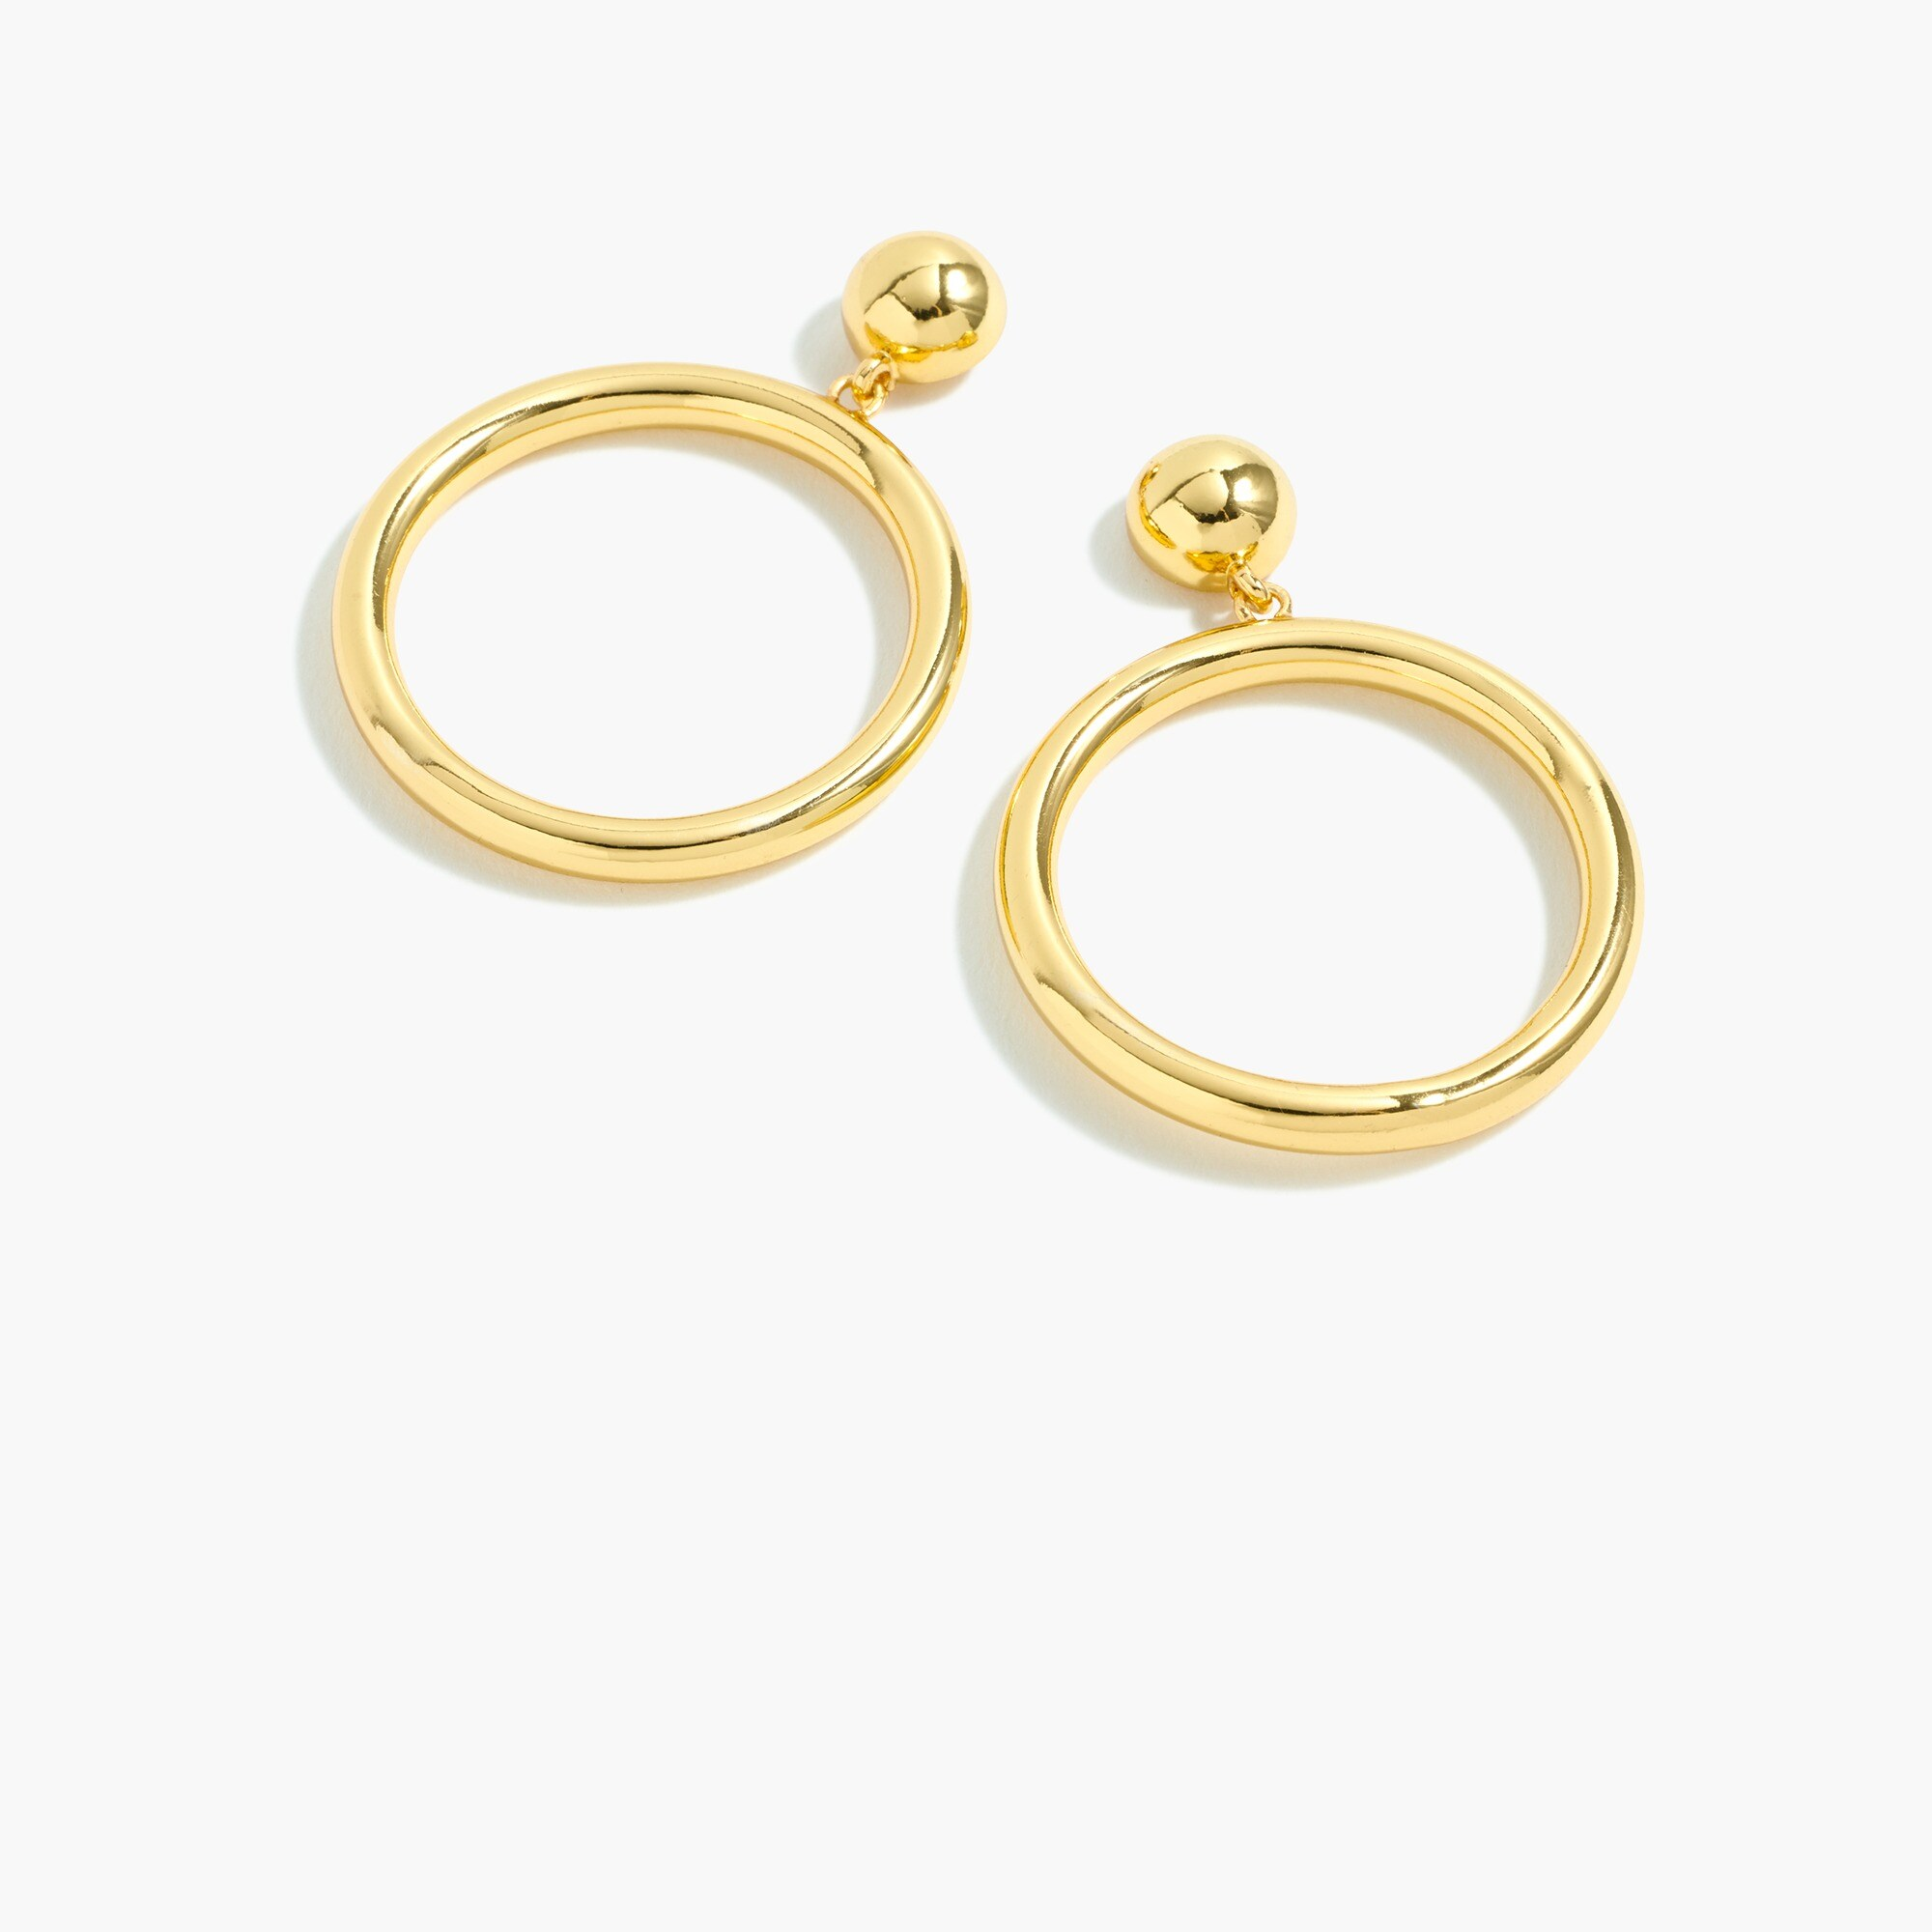 Image 1 for Gold circle earrings